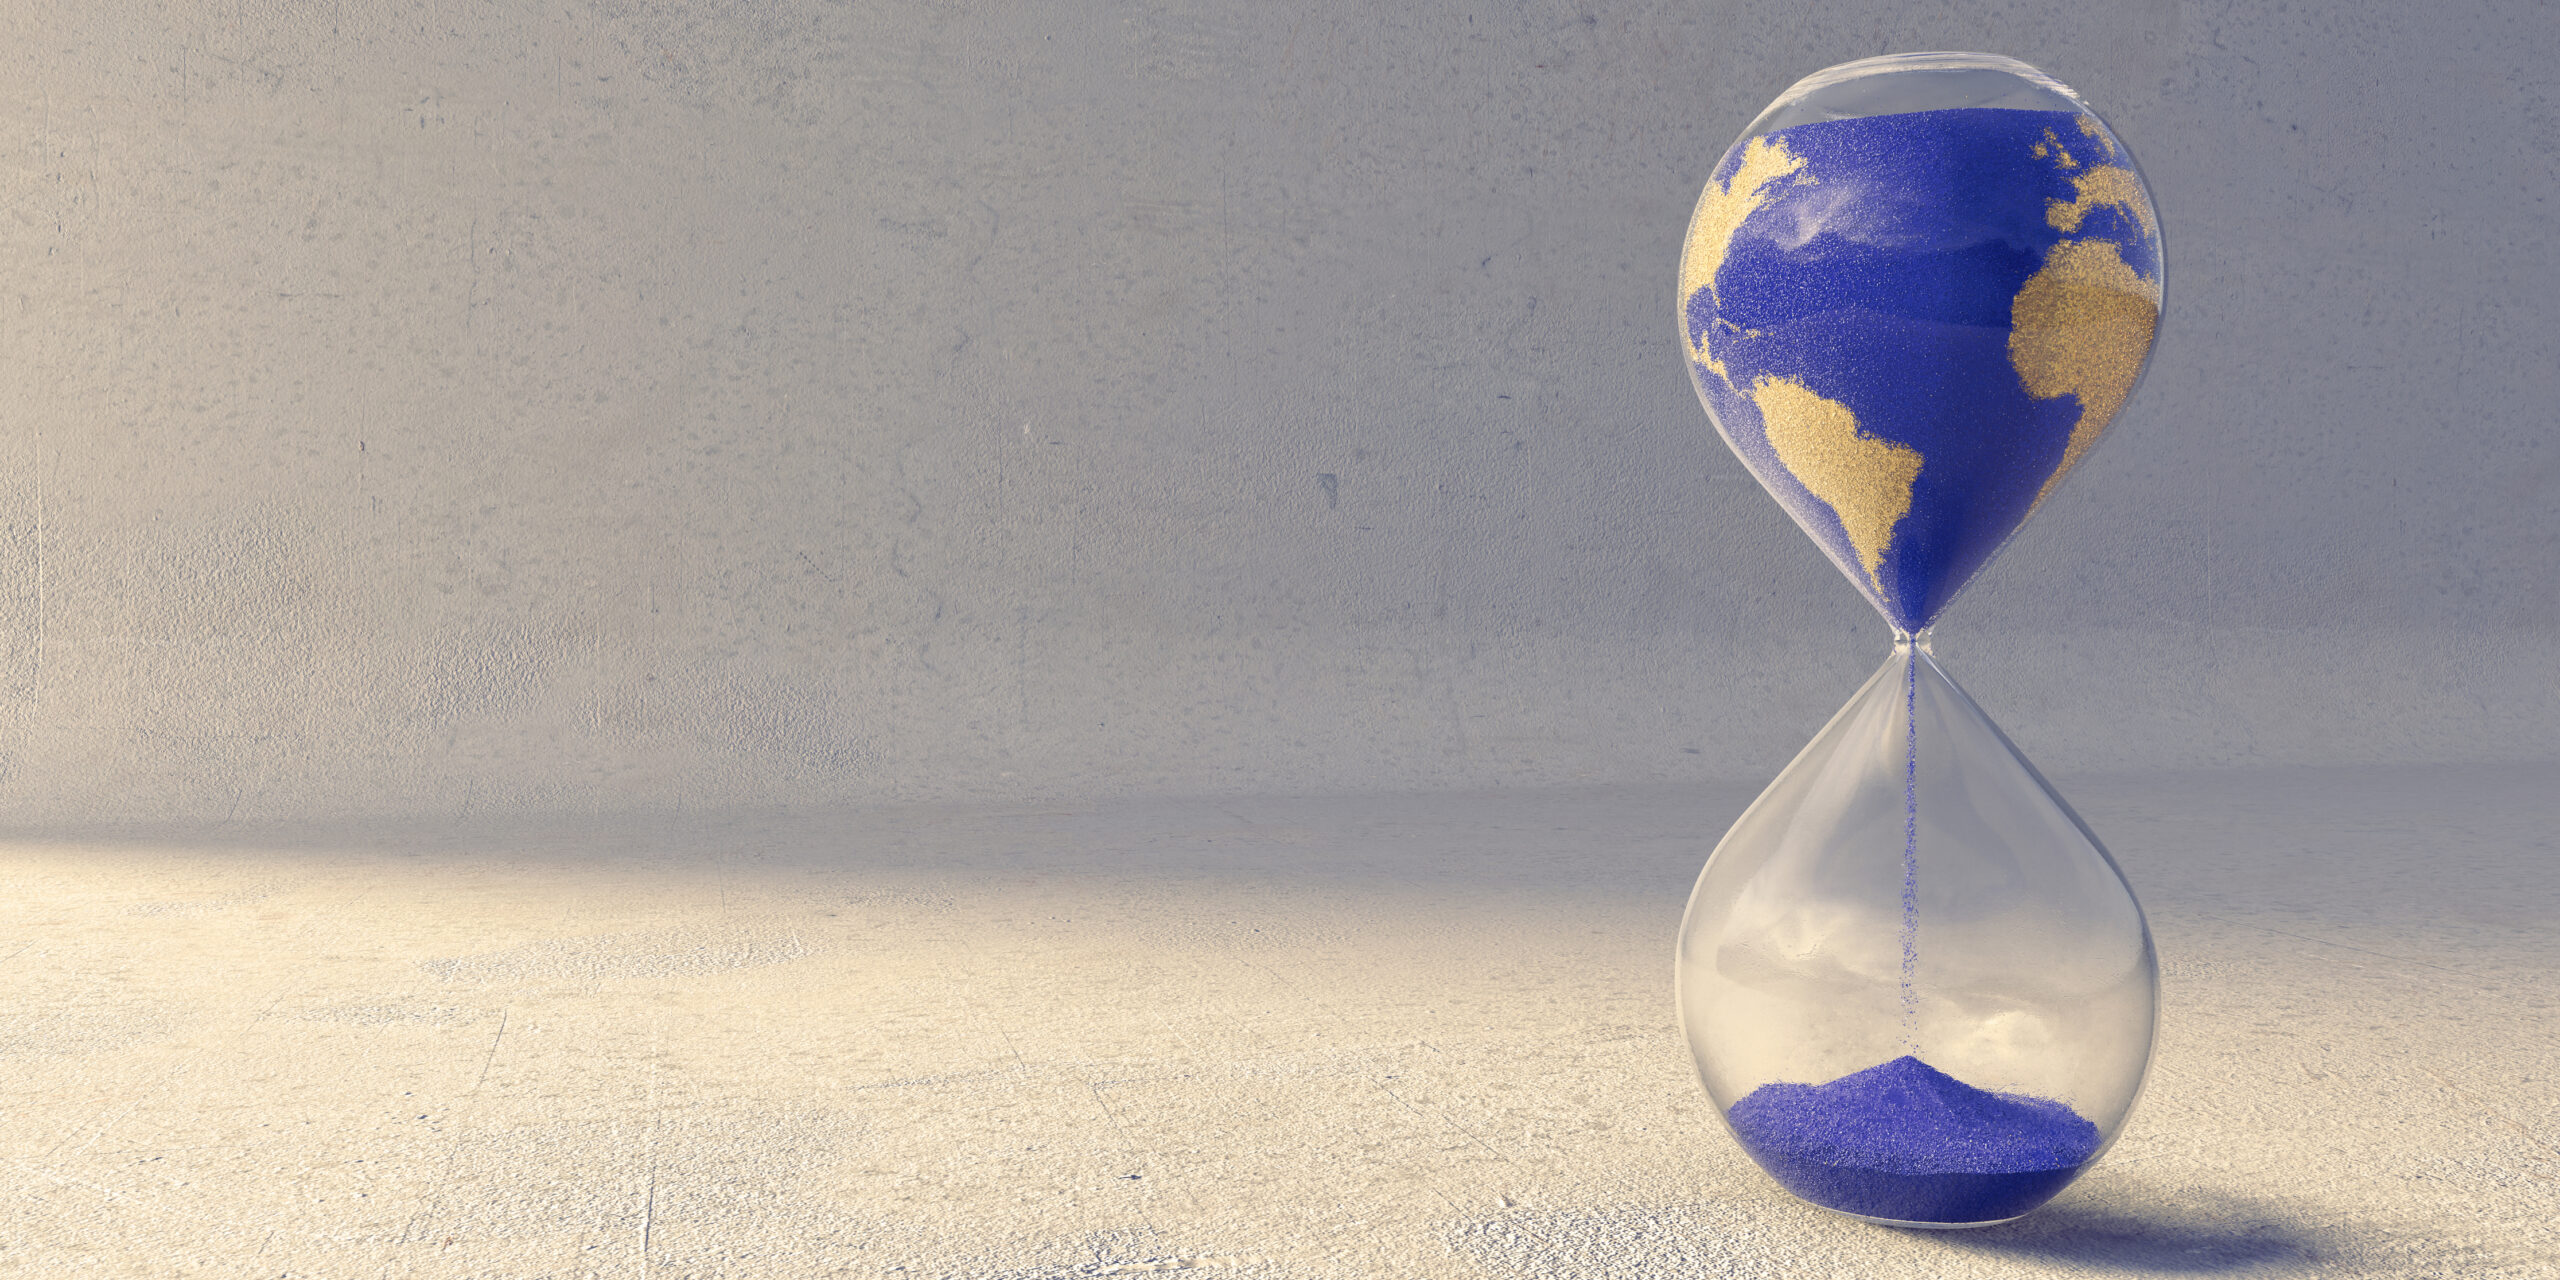 A close up image of an hourglass filled with blue and yellow sand, in the pattern of the countries of the earth. Sand is slowly trickling from the top to pile up in the bottom chamber over time. The timer sits on a rough textured concrete floor near wall.